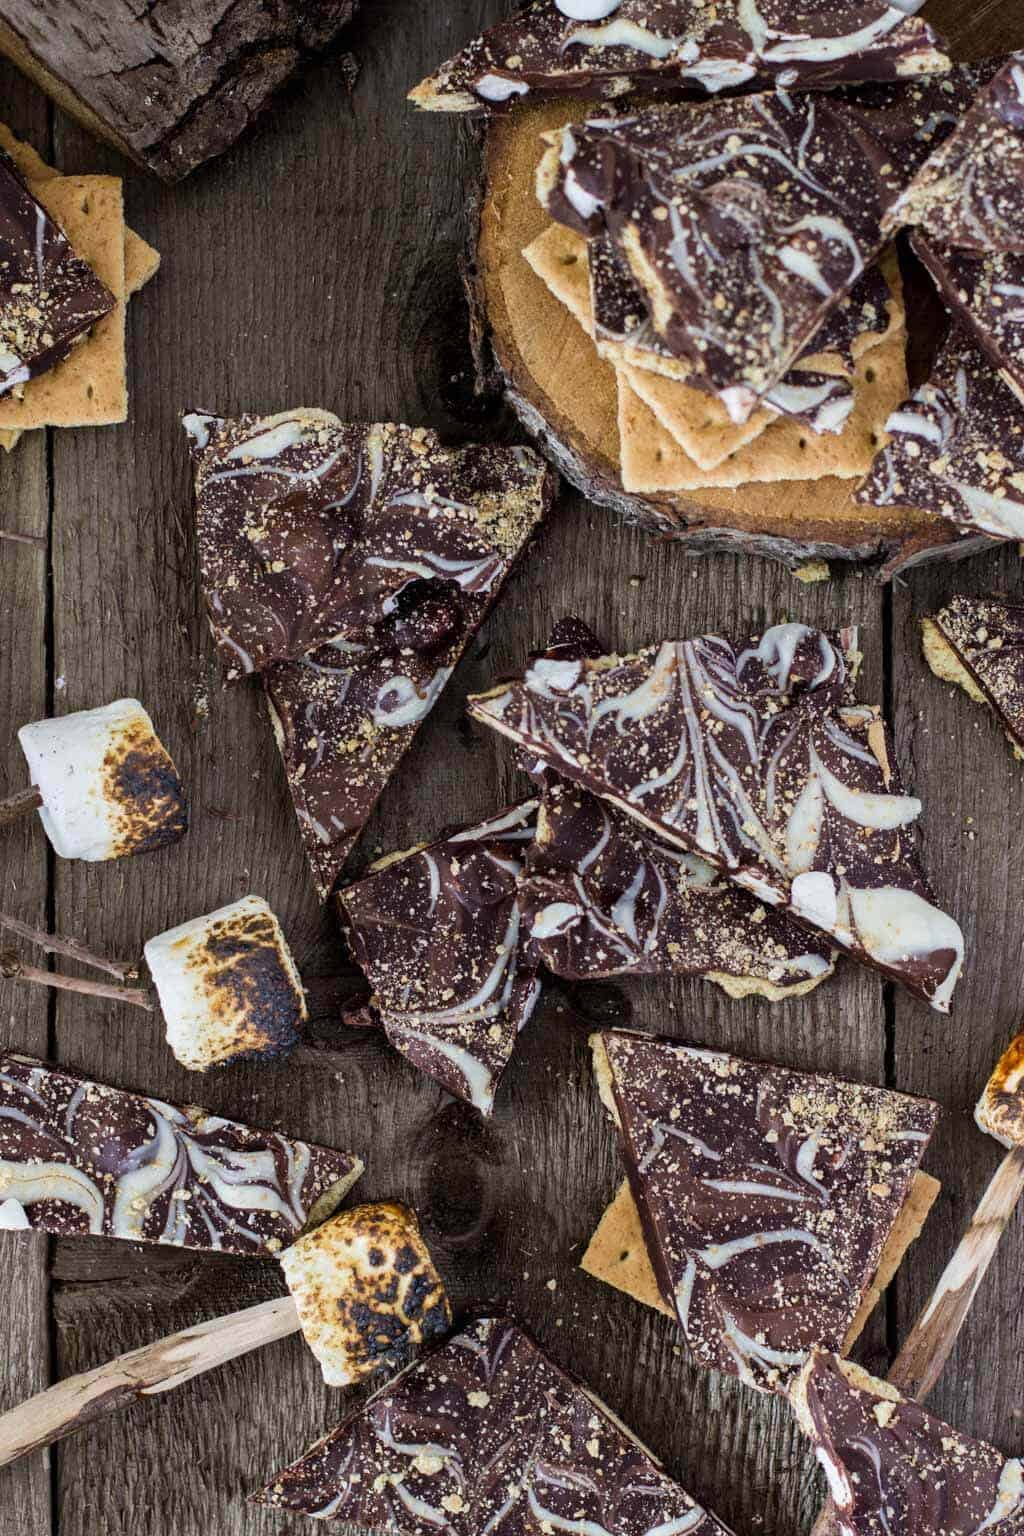 S'mores Bark! Made with dark chocolate and loaded with graham cracker crumbs and mini marshmallows, then swirled with milk chocolate and white chocolate